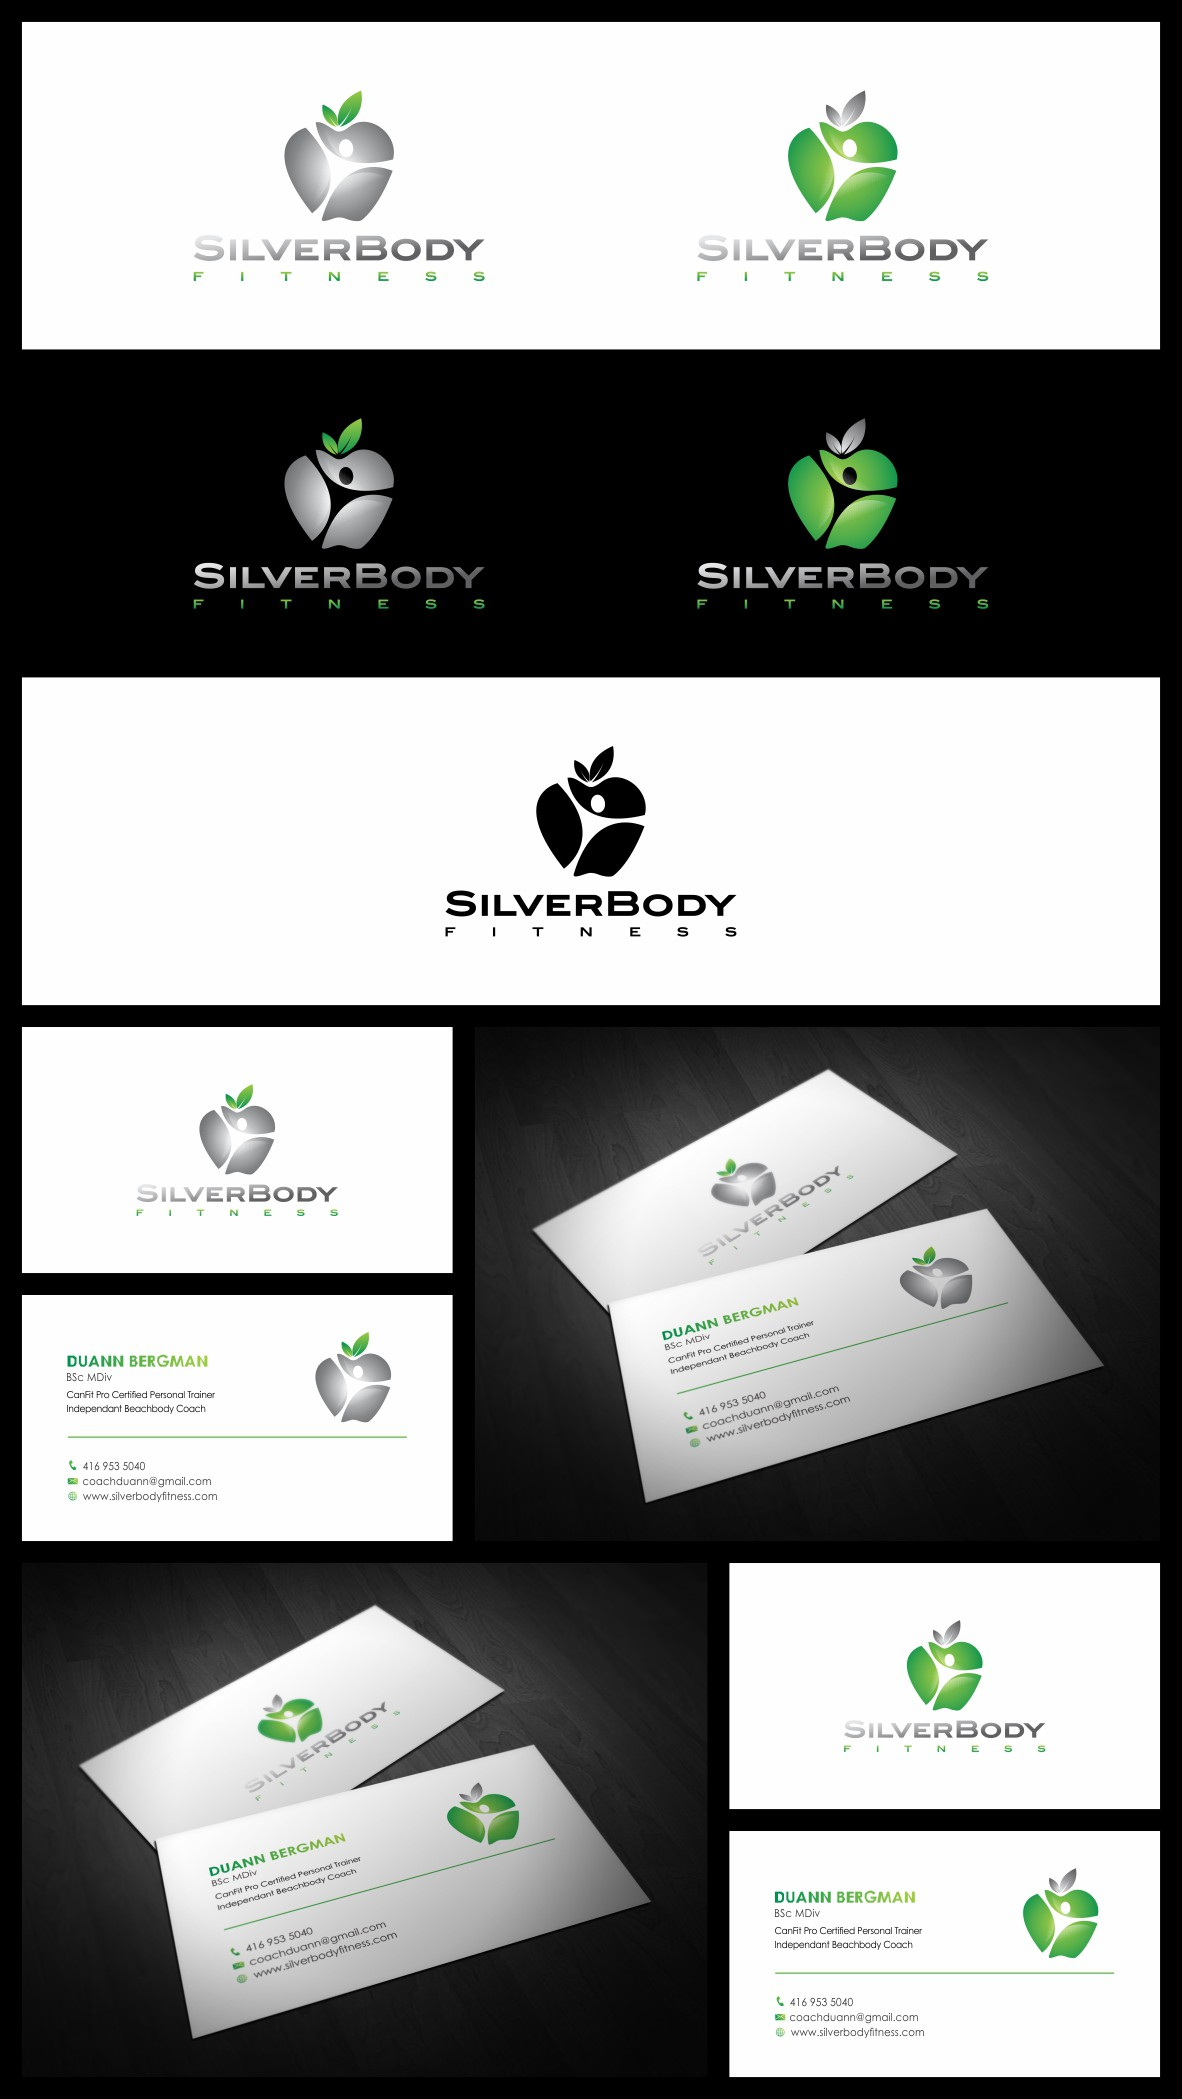 Sleek and modern logo and business card wanted for SilverBody Fitness